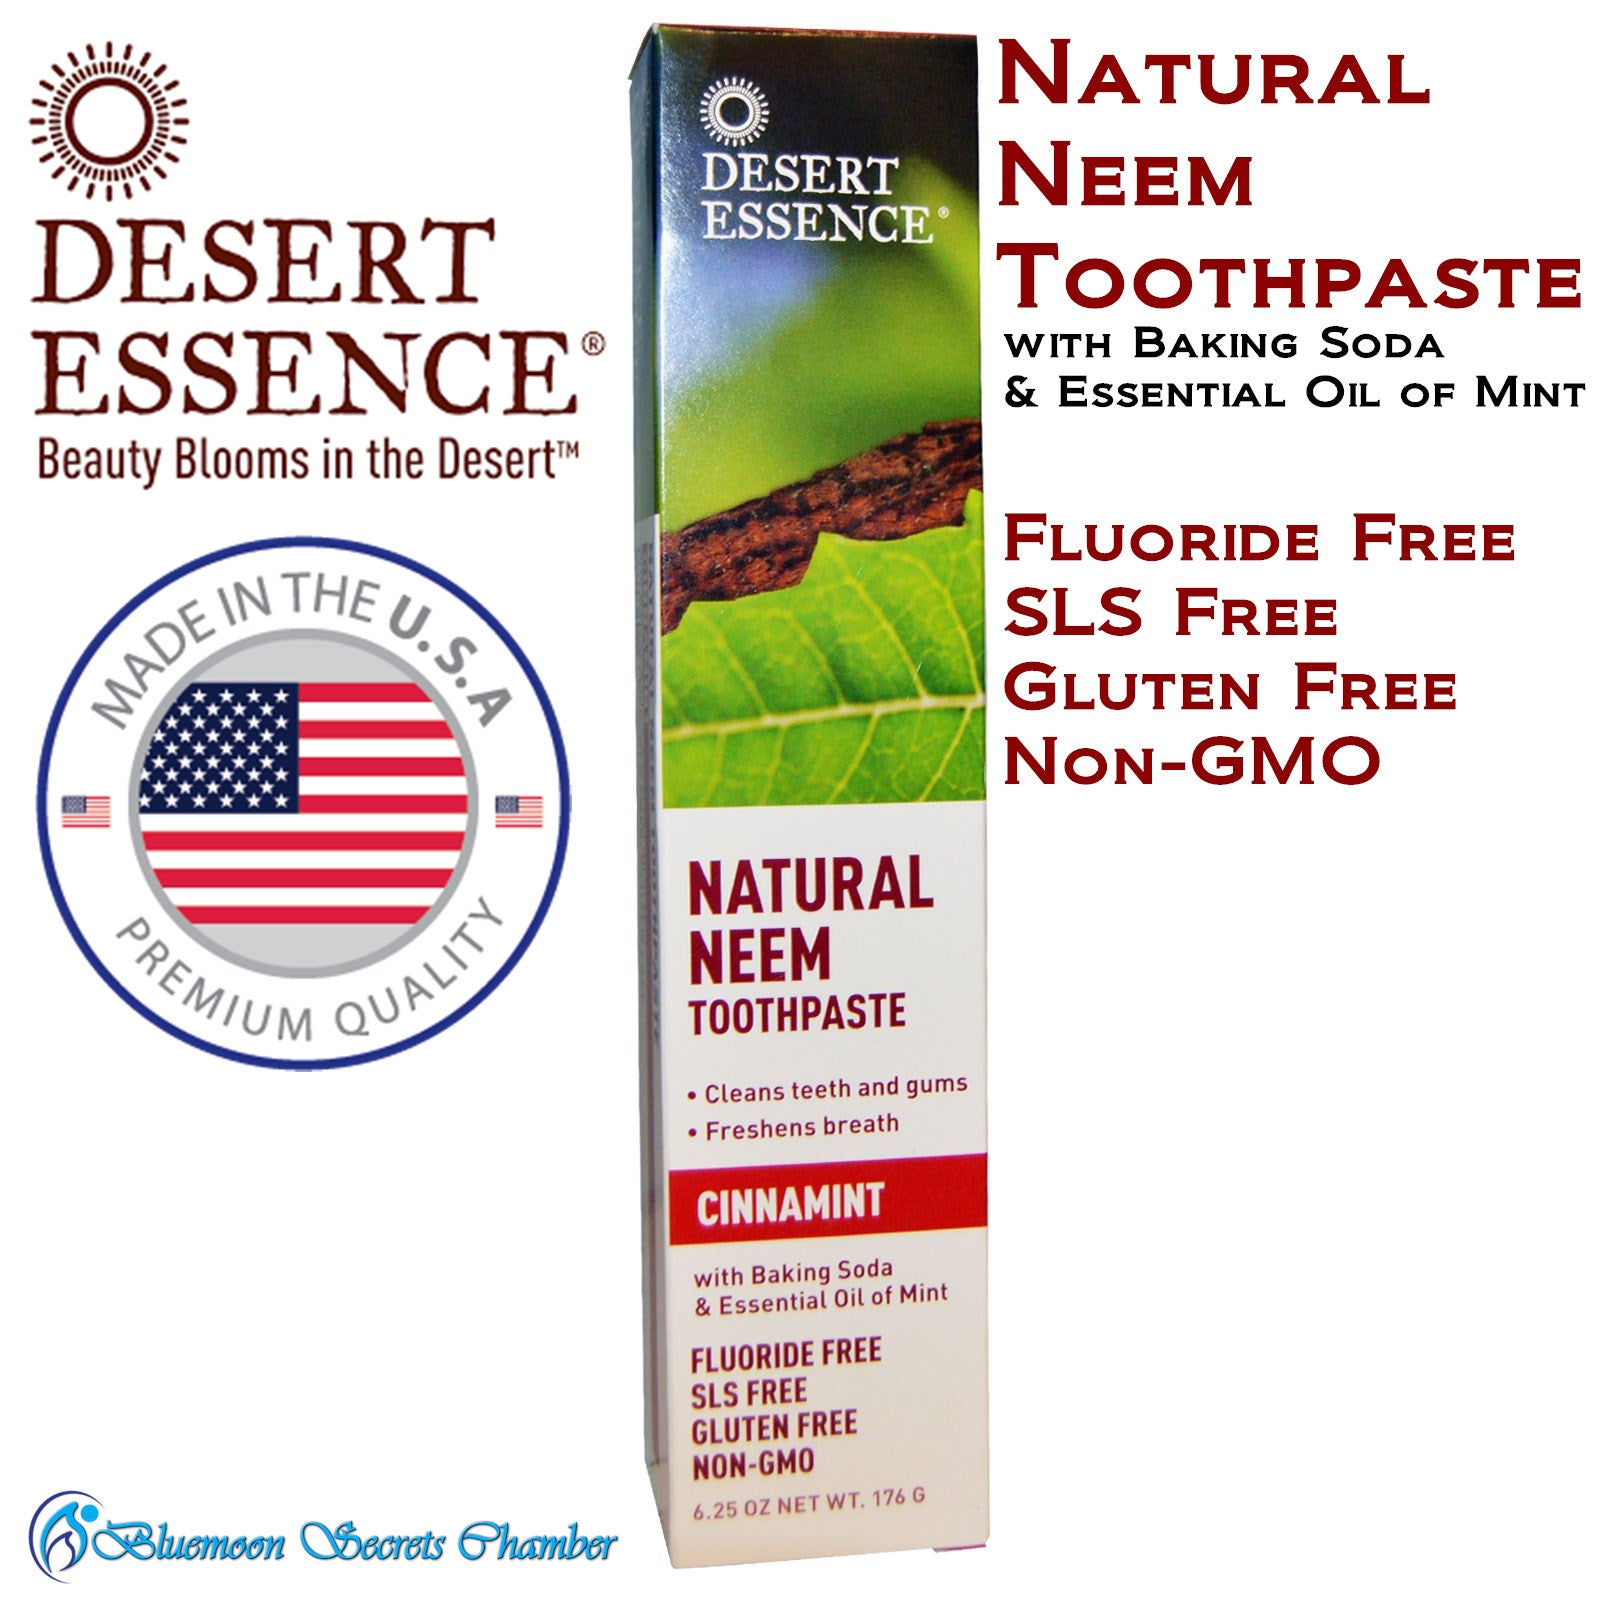 Desert Essence, Natural Neem Toothpaste, Cinnamint, 6.25 oz (176 g) - Bluemoon Secrets Chamber